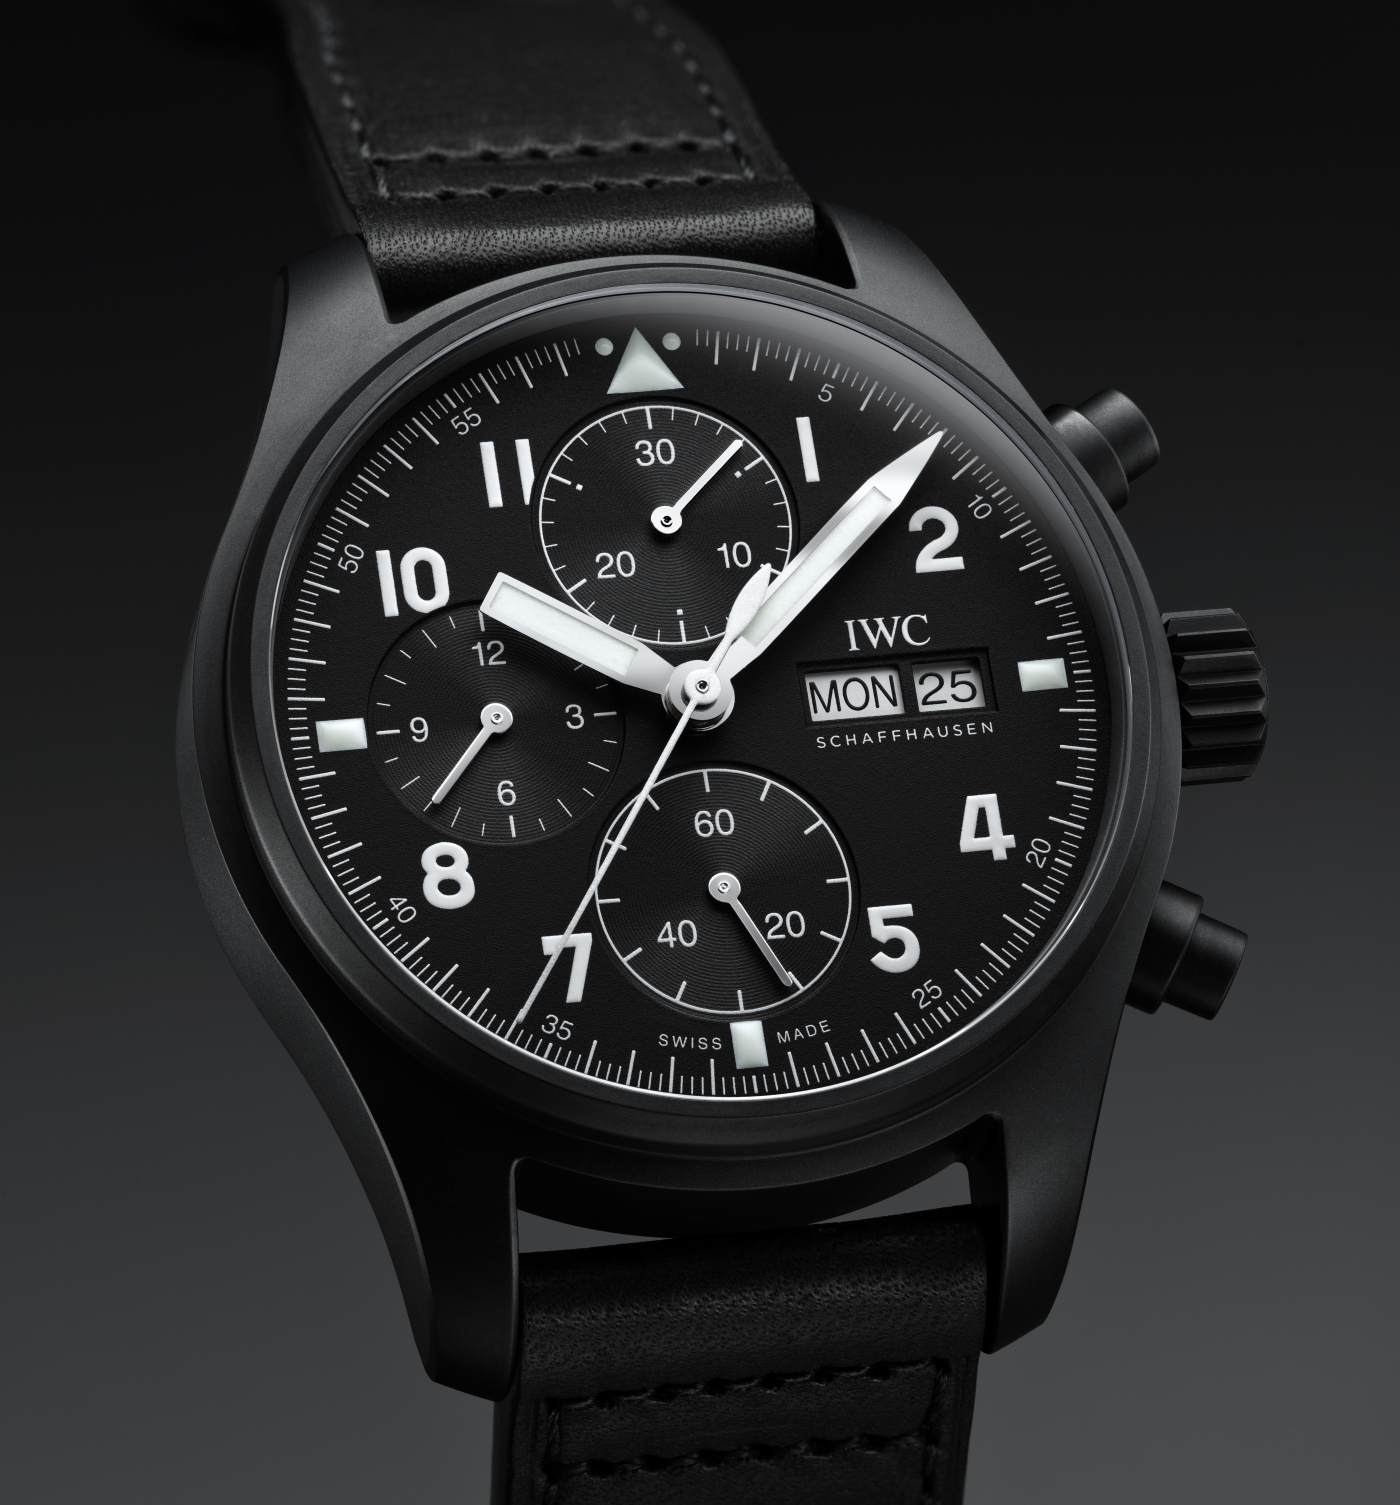 iwc_pilot_s_watch_chronograph_edition_tribute_to_3705_front-_europa_star_watch_magazine_2021